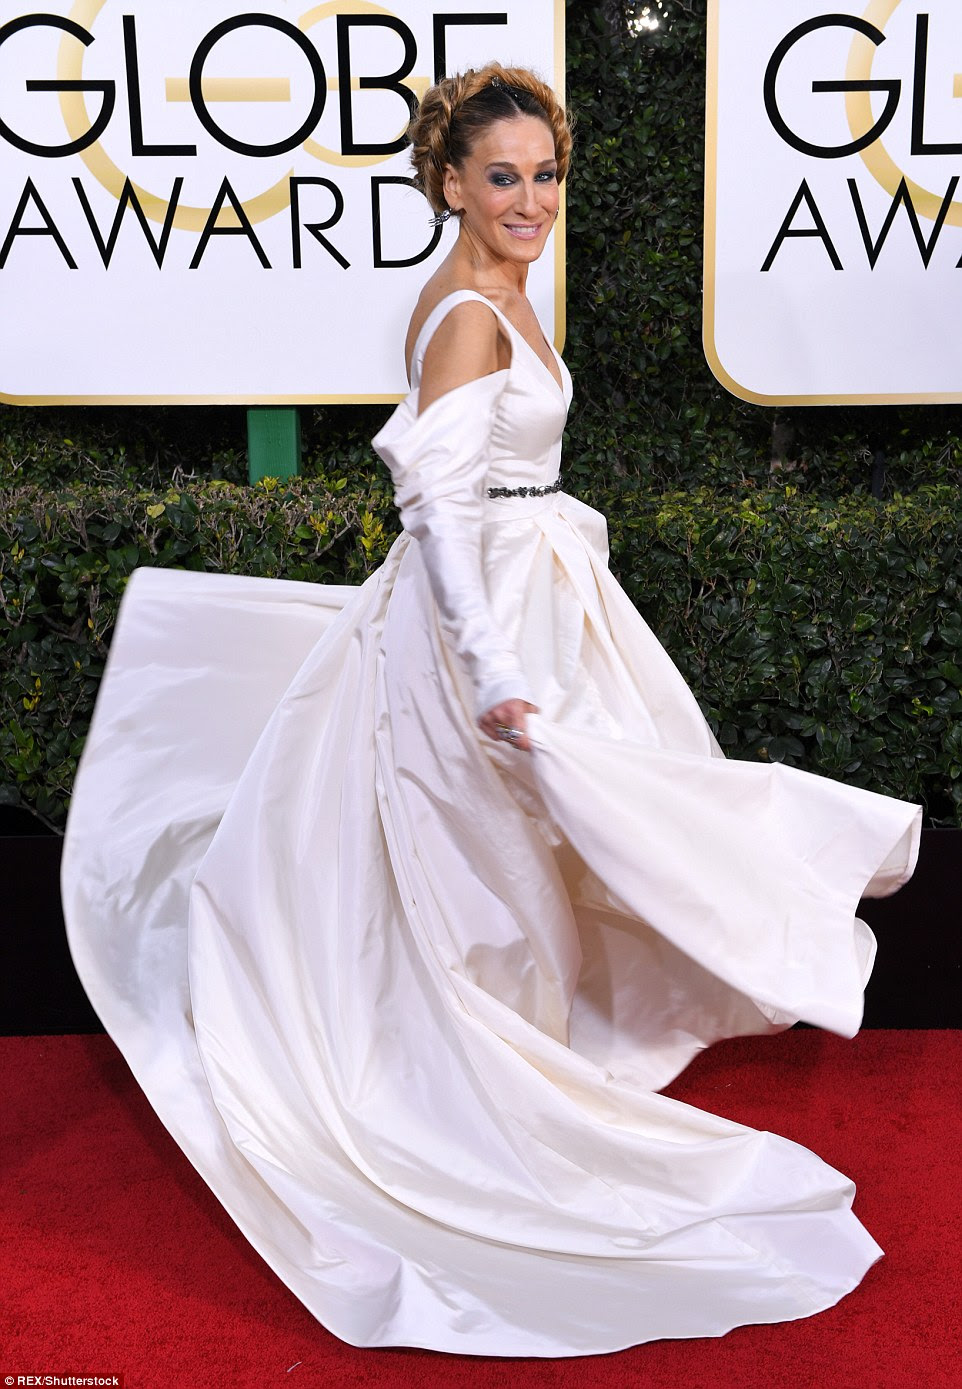 Now that's a dress! Sarah Jessica Parker had a Carrie Bradshaw moment as she twirled in her white Vera Wang gown on the red carpet for the Golden Globes on Sunday